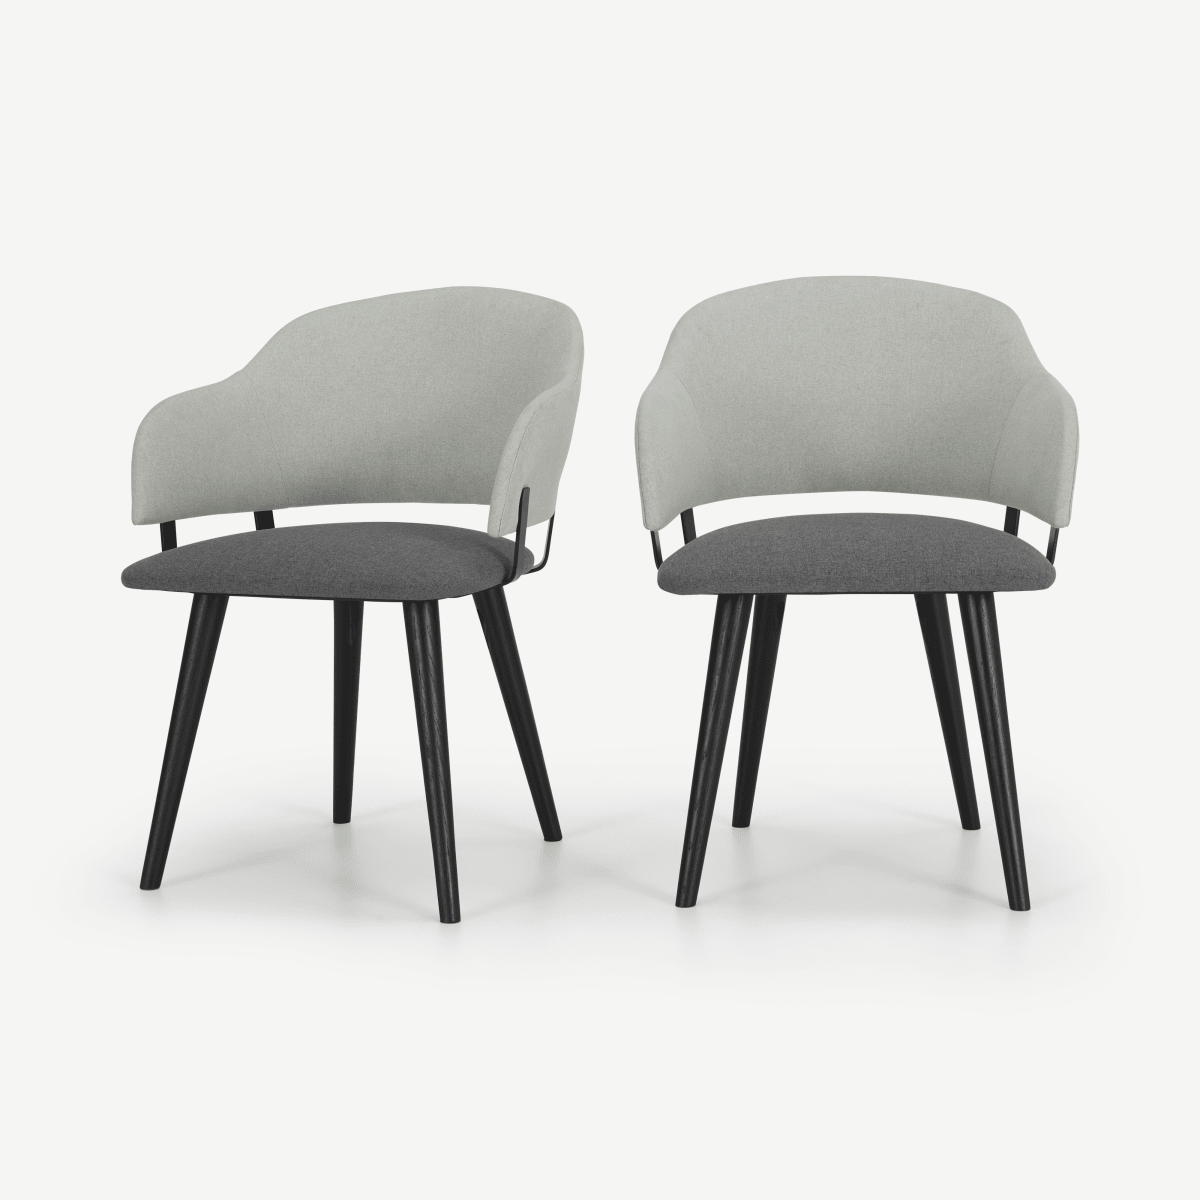 Set-of-2-Neilson-Carver-Dining-Chairs-Marl-and-Hail-Grey_26398839489.jpg